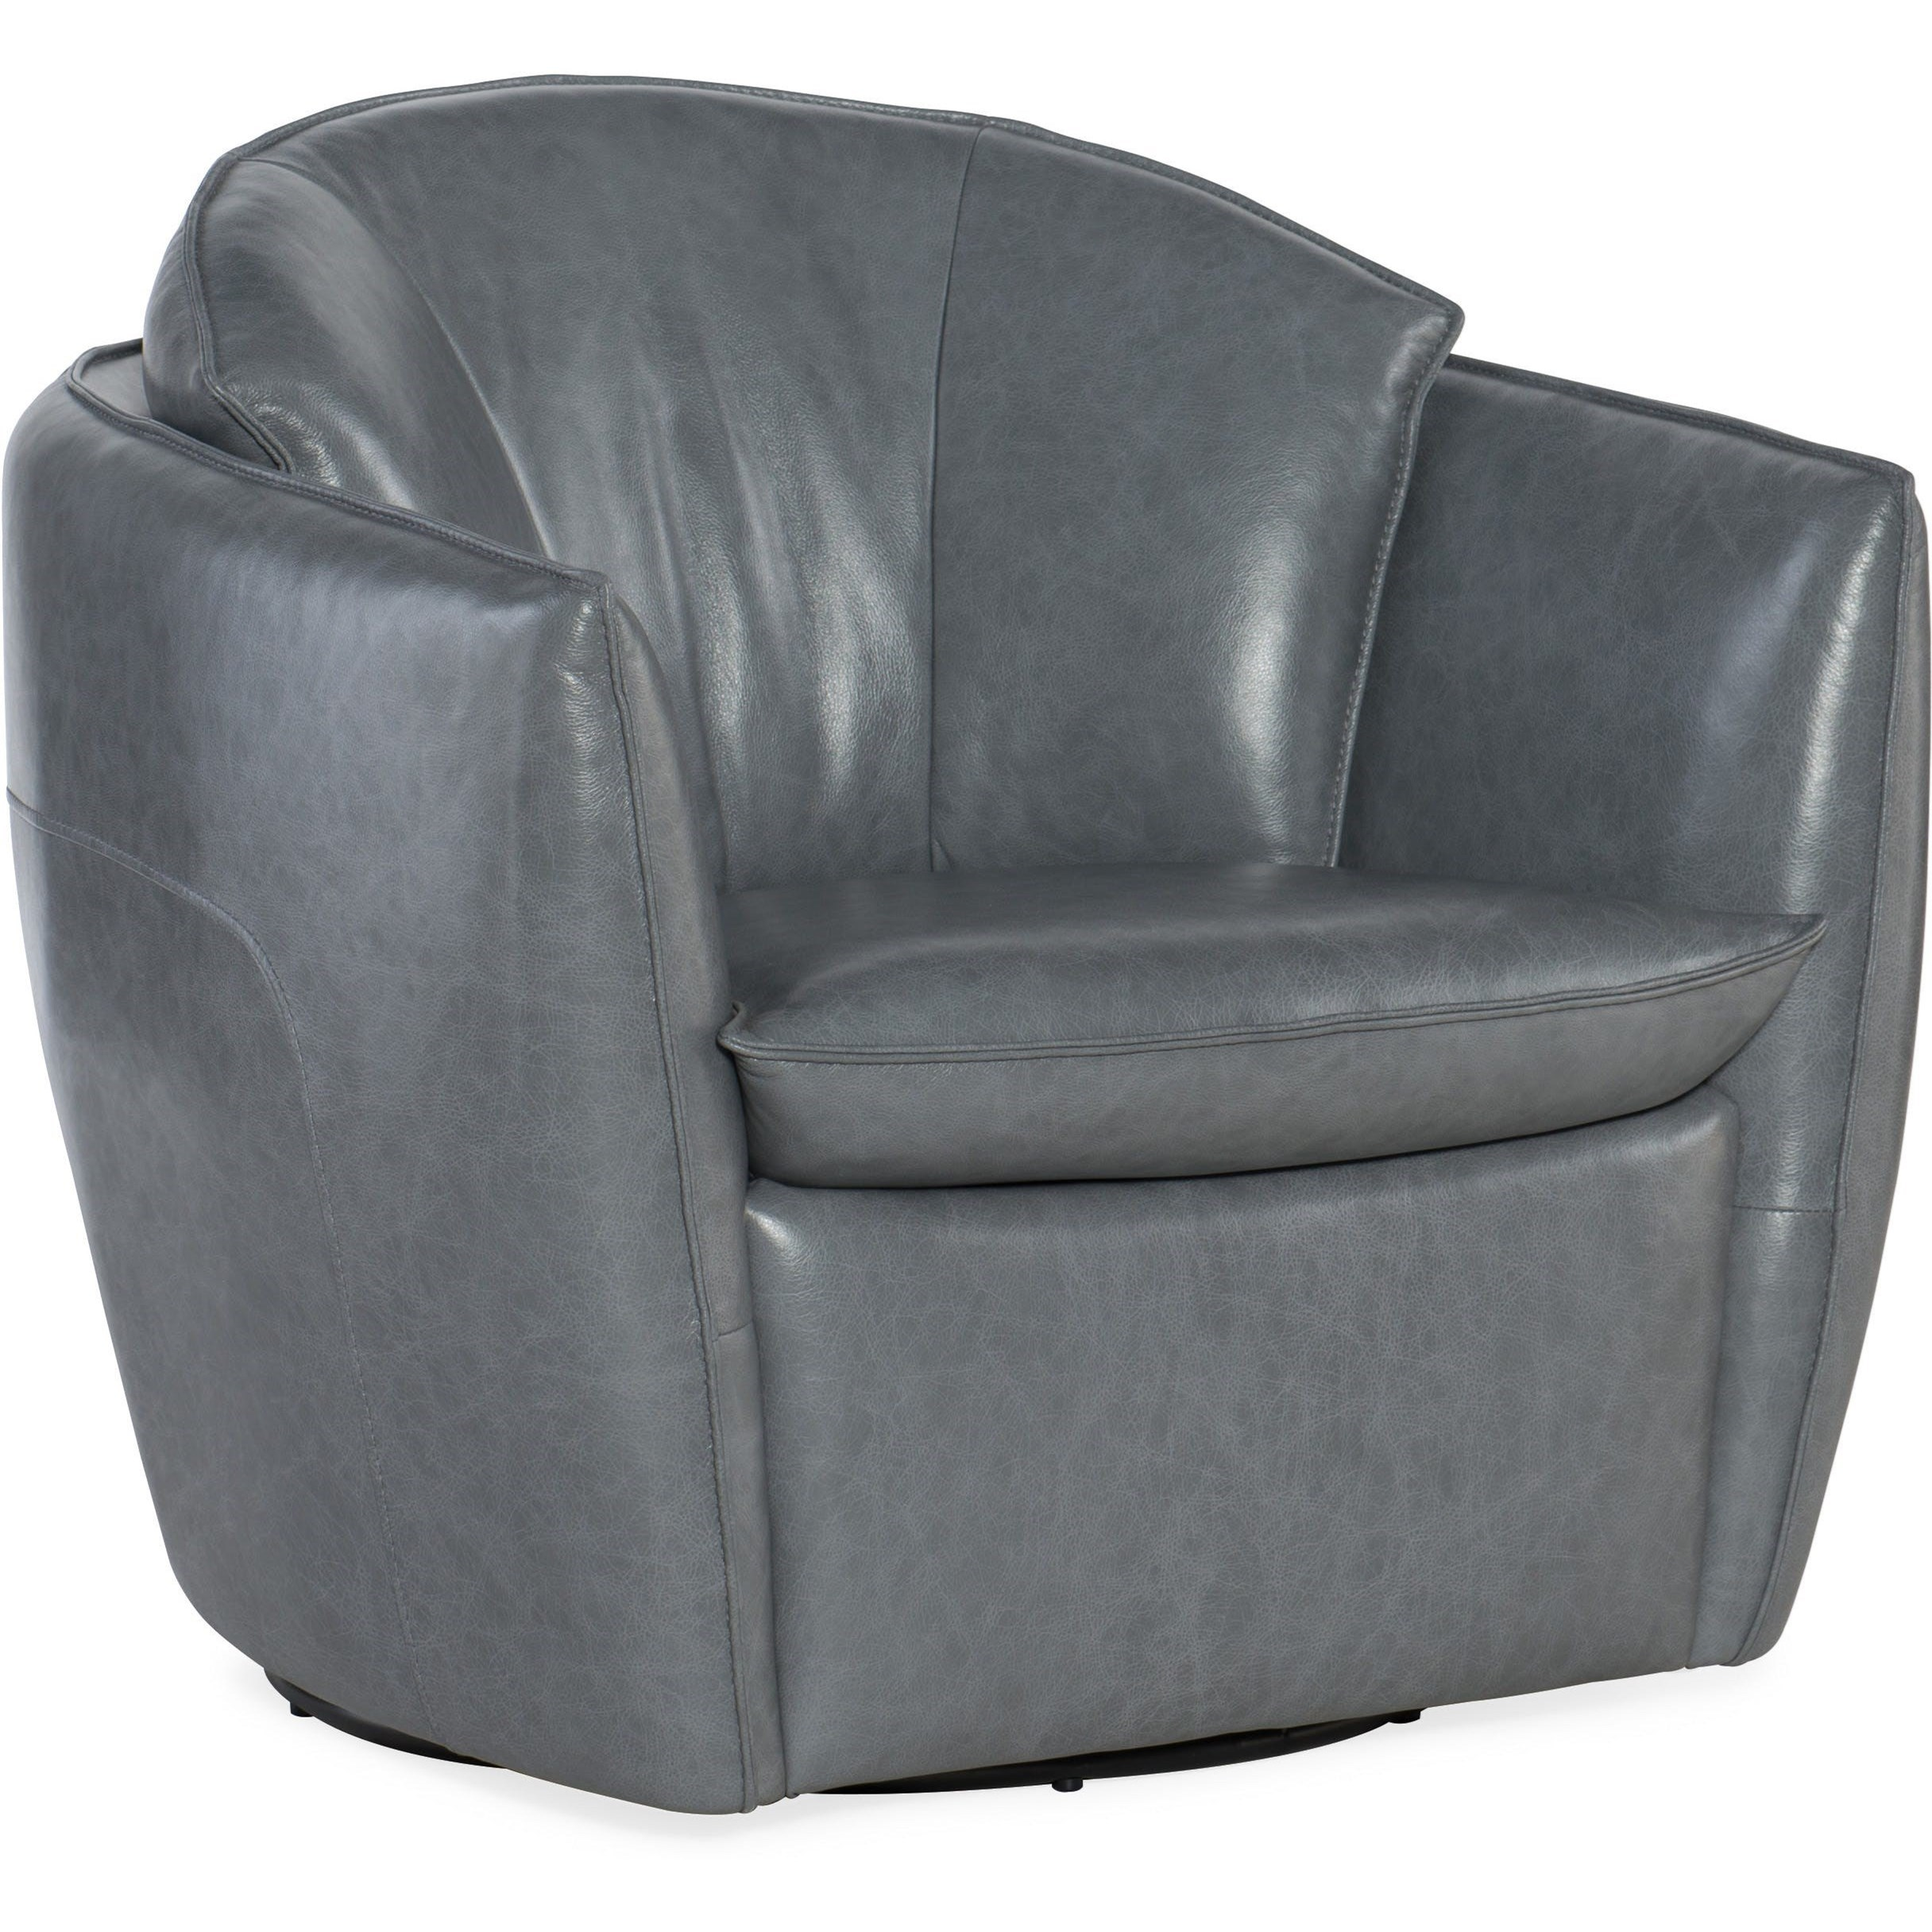 Club Chairs Contemporary Leather Vogue Vintage Swivel